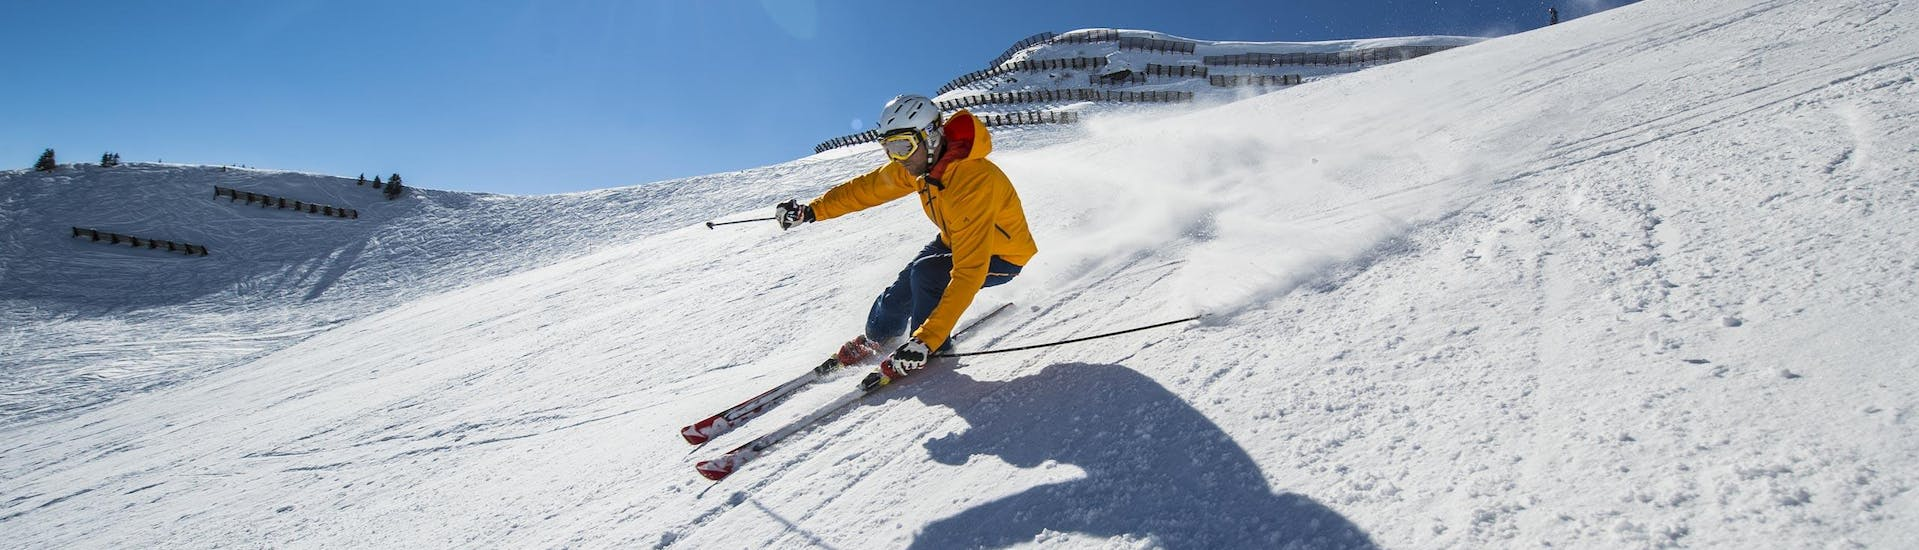 Private Ski Lessons for Adults of All Levels - Grimentz: A skier is skiing down a sunny ski slope while participating in an activity offered by ESI Grimentz-Zinal.